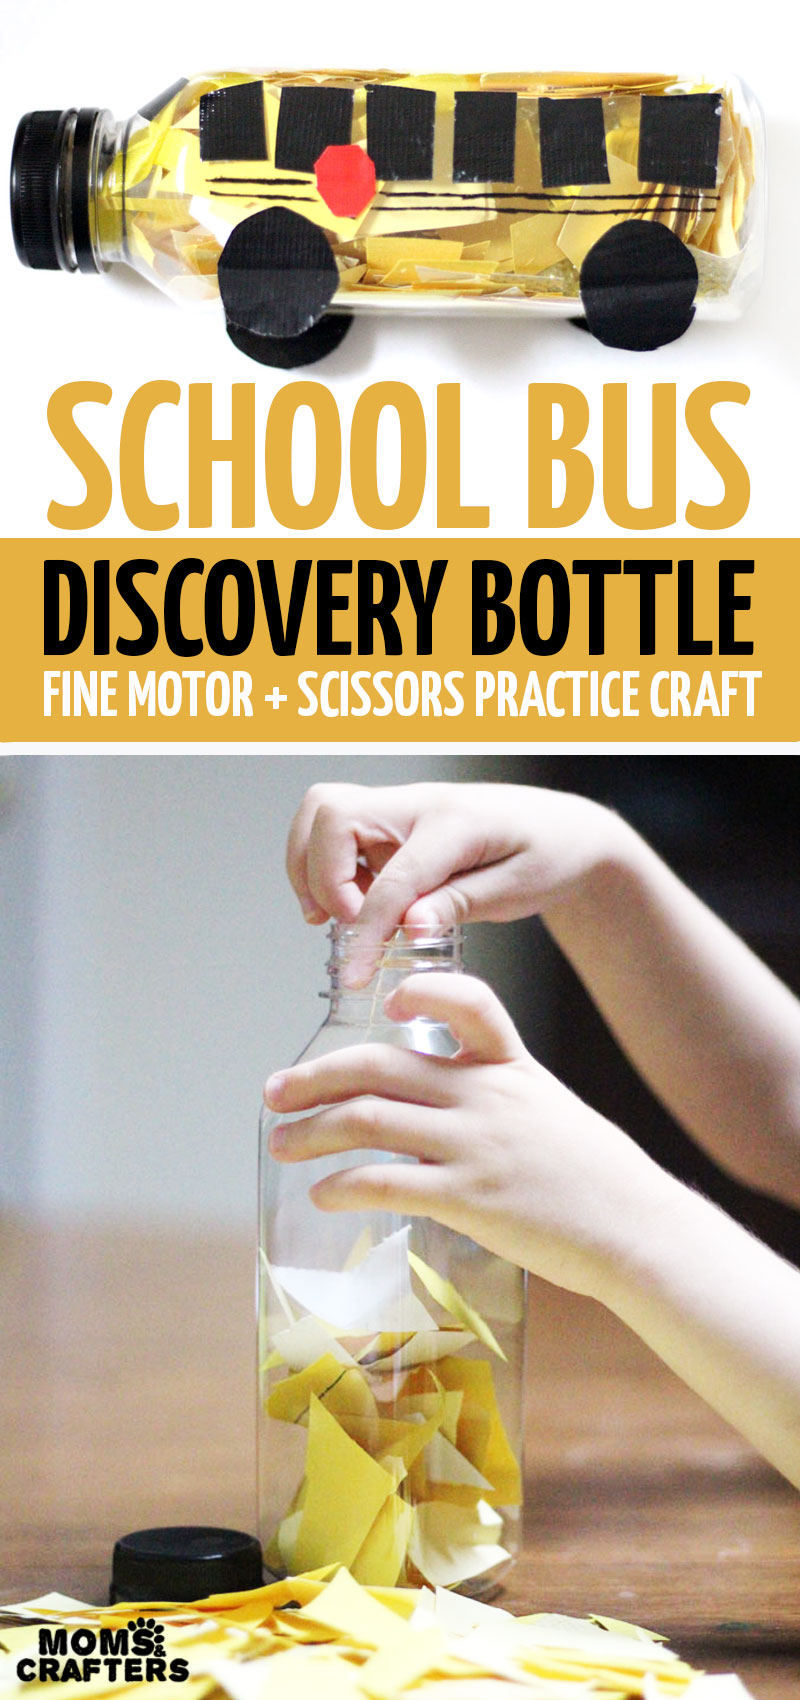 Click for a sweet tutorial on how to make a school bus discovery bottle - a great kindergarten or preschool preparation activity and scissors skills cutting practice, plus it makes a cool fine motor activity and DIY sensory toy for back to school! You'll love this cool back to school craft for kids. #schoolbus #backtoschool #finemotor